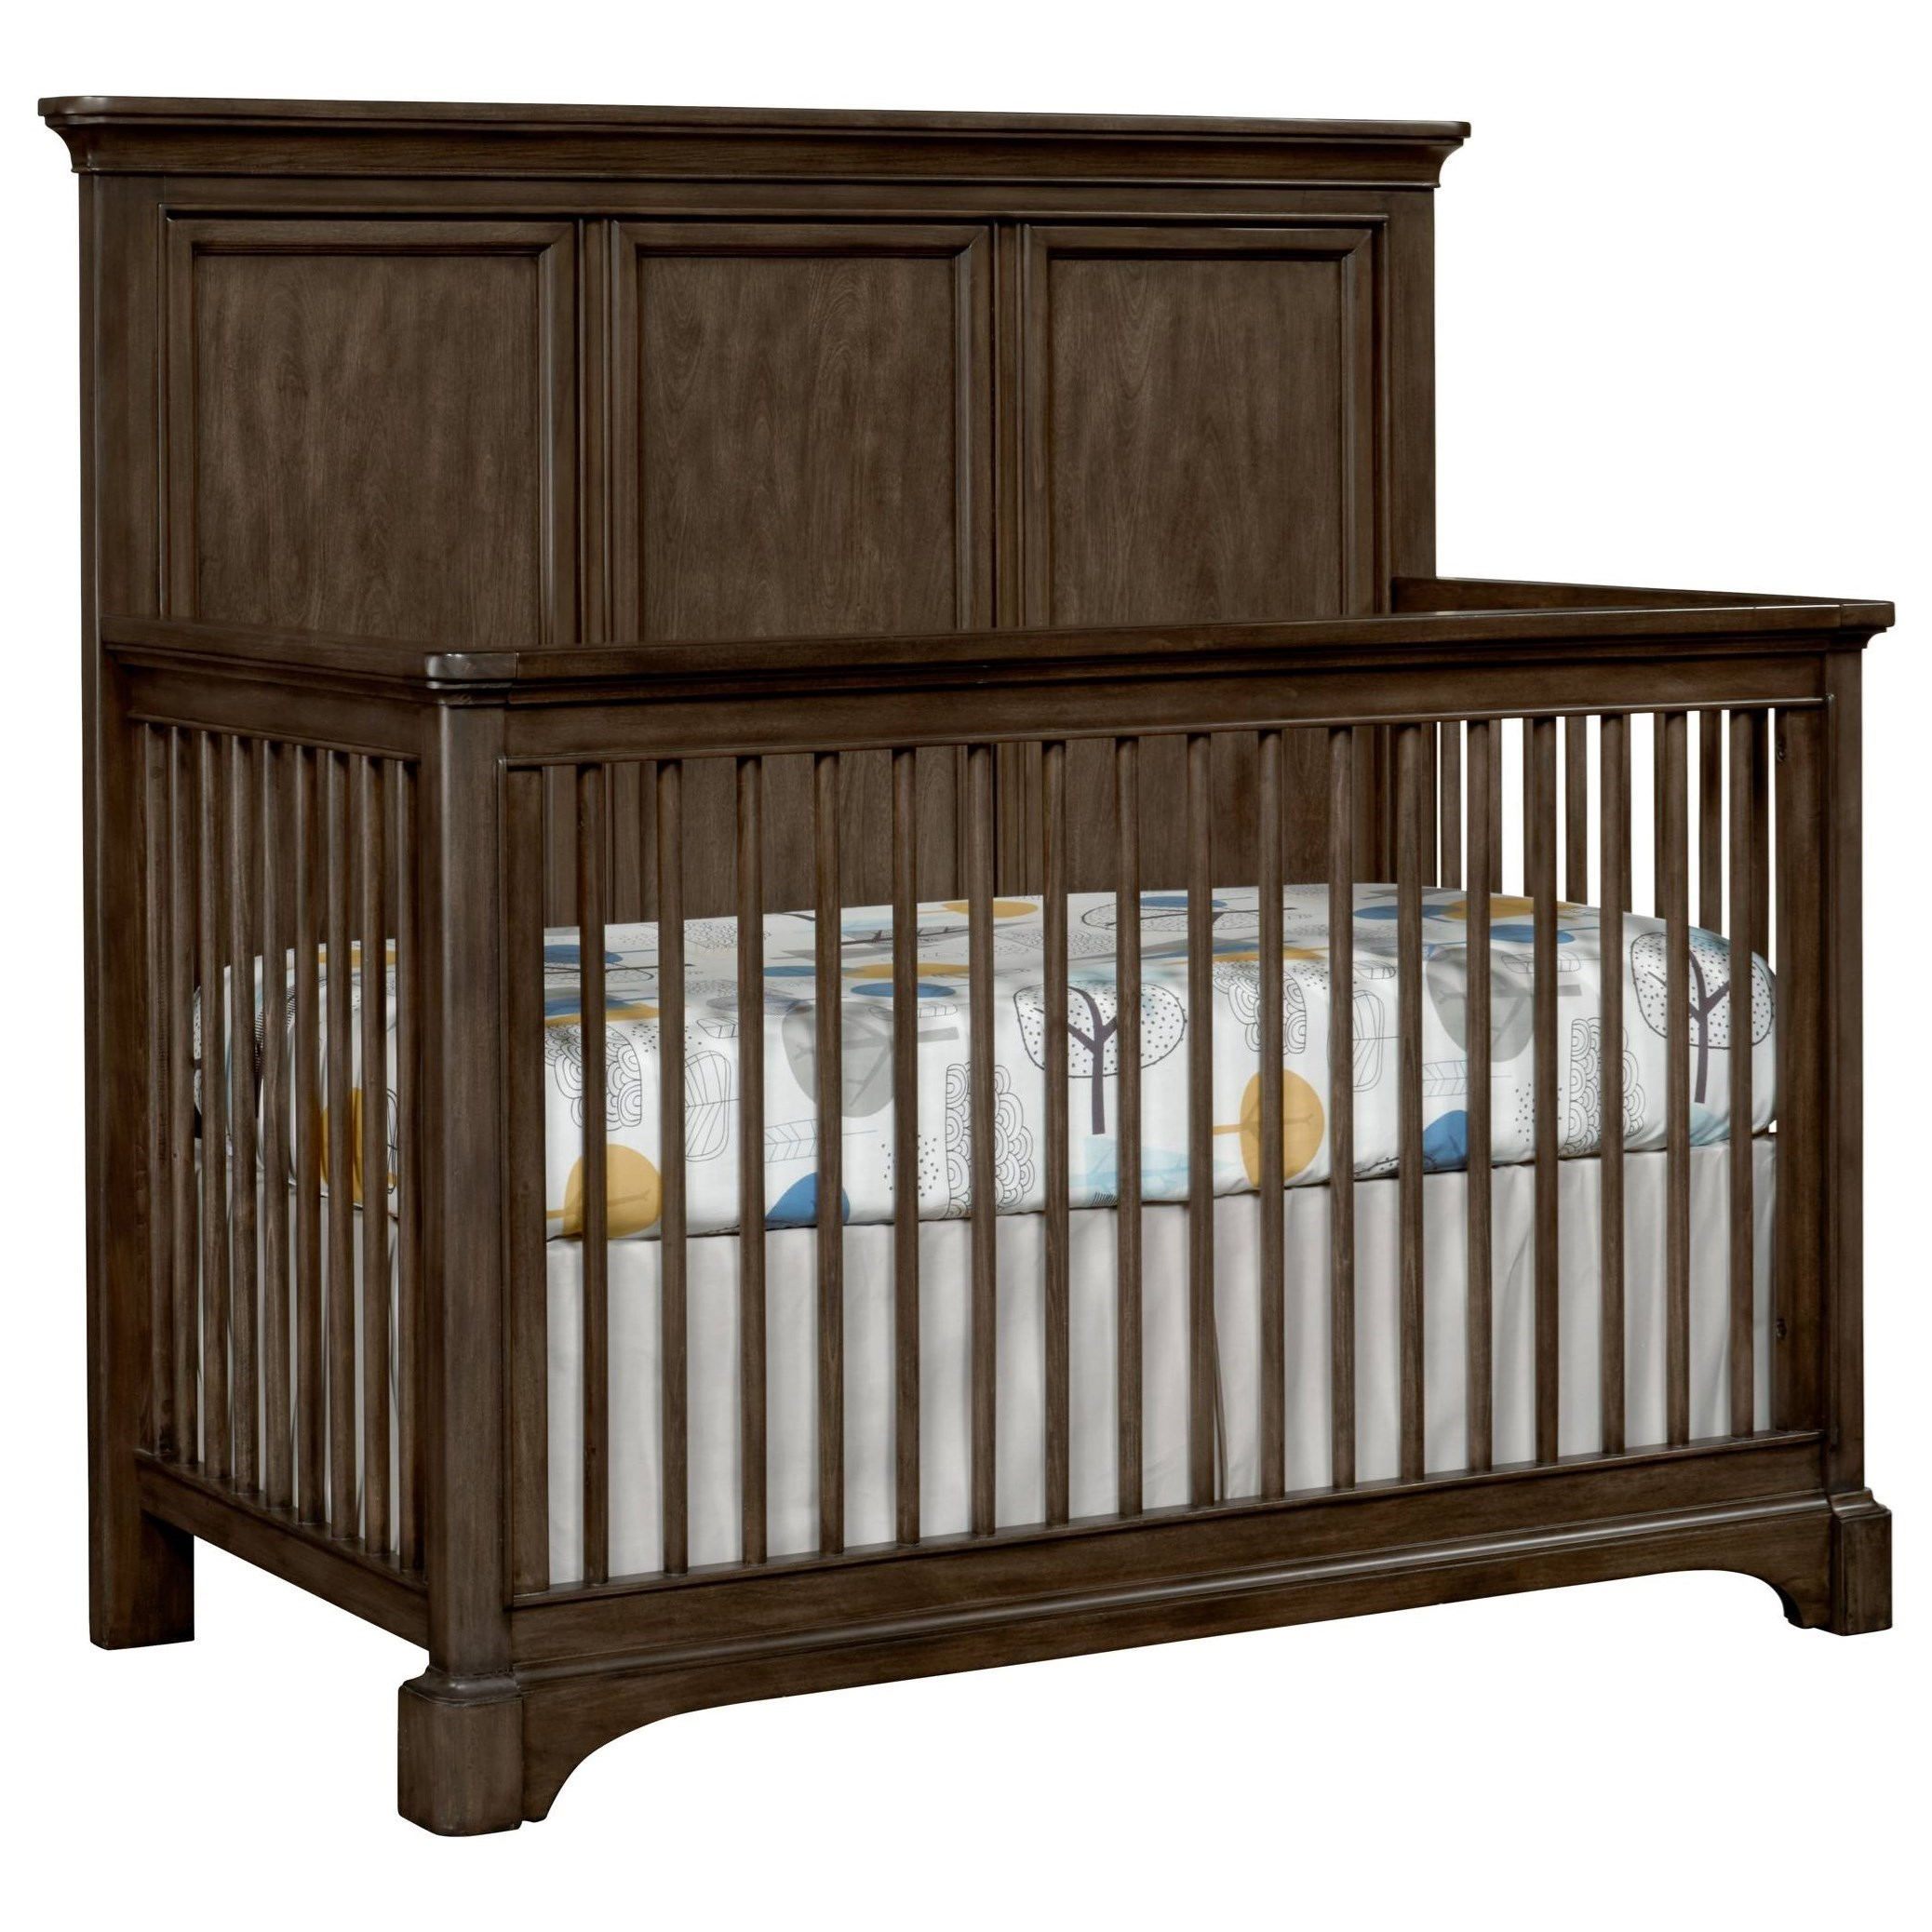 Chelsea Square Built To Grow Crib by Stone & Leigh Furniture at Alison Craig Home Furnishings